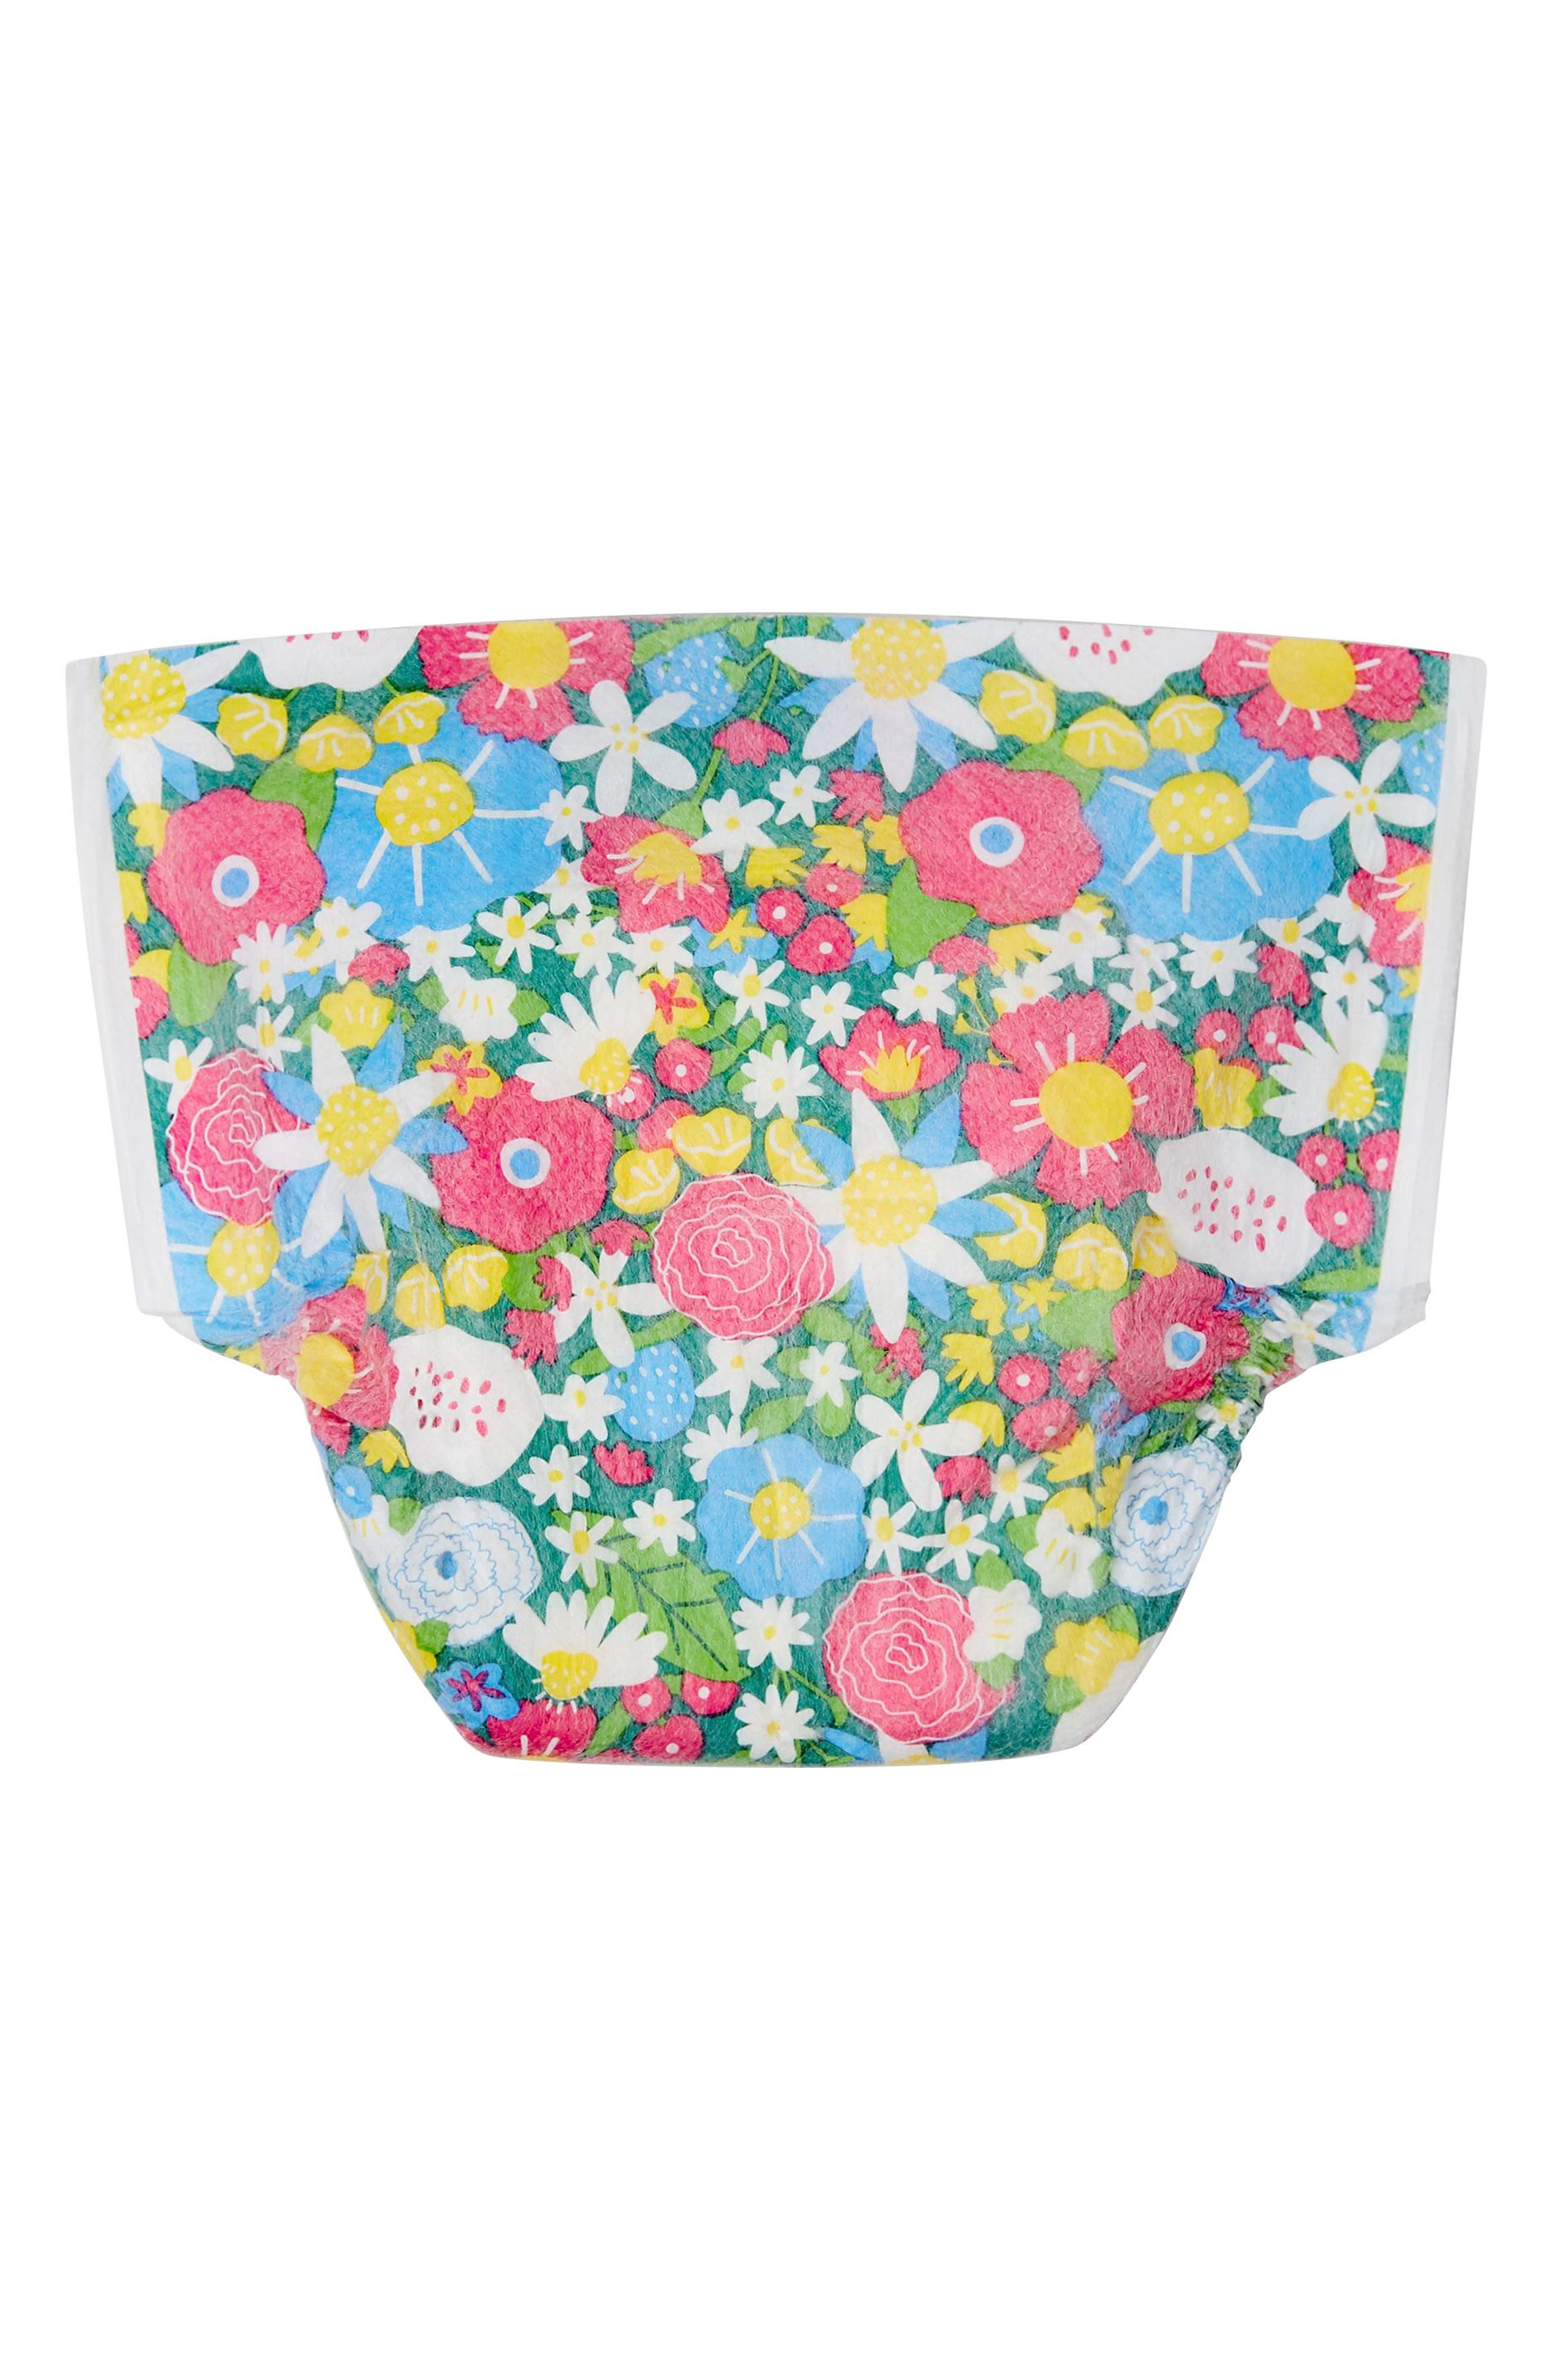 Flower Patch Diapers,                             Main thumbnail 1, color,                             Flower Patch